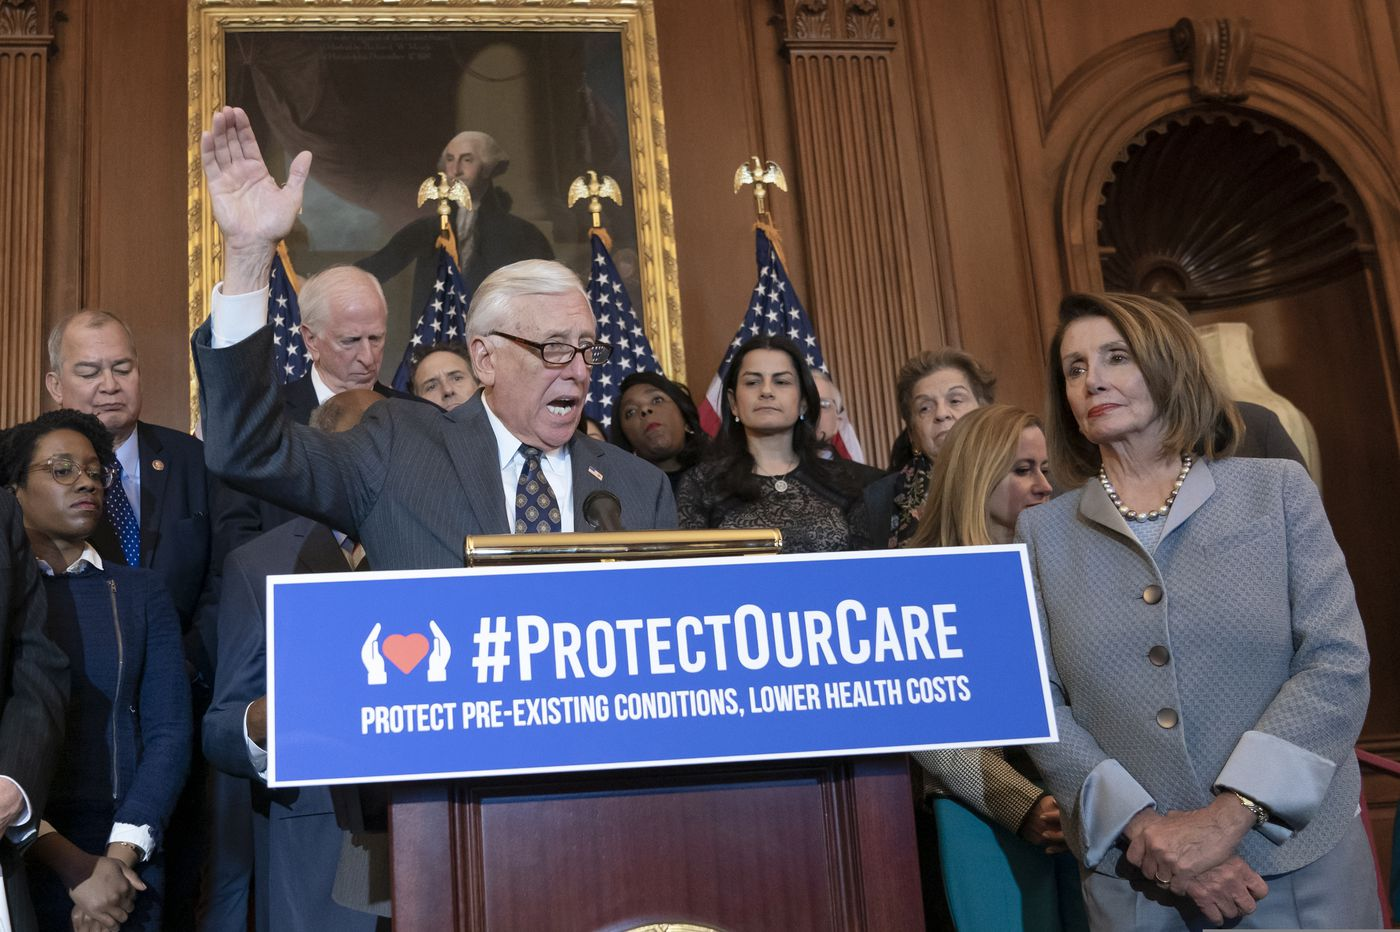 Trump's threats to Obamacare put us all in peril | Opinion